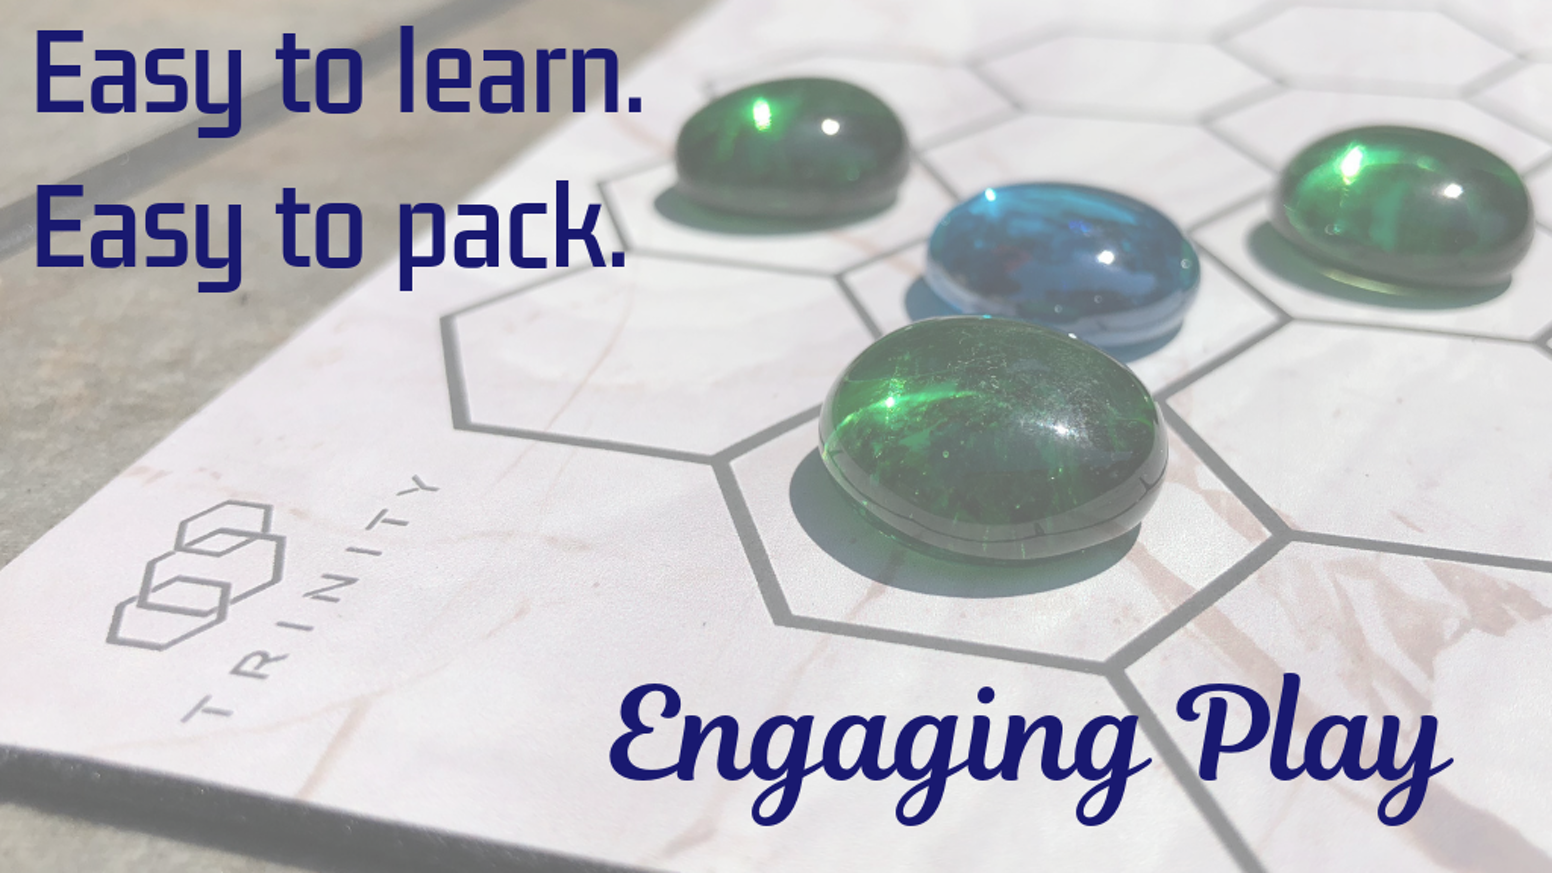 Trinity is an easy to learn strategy game that is easy to pack and travel with on your next adventure.